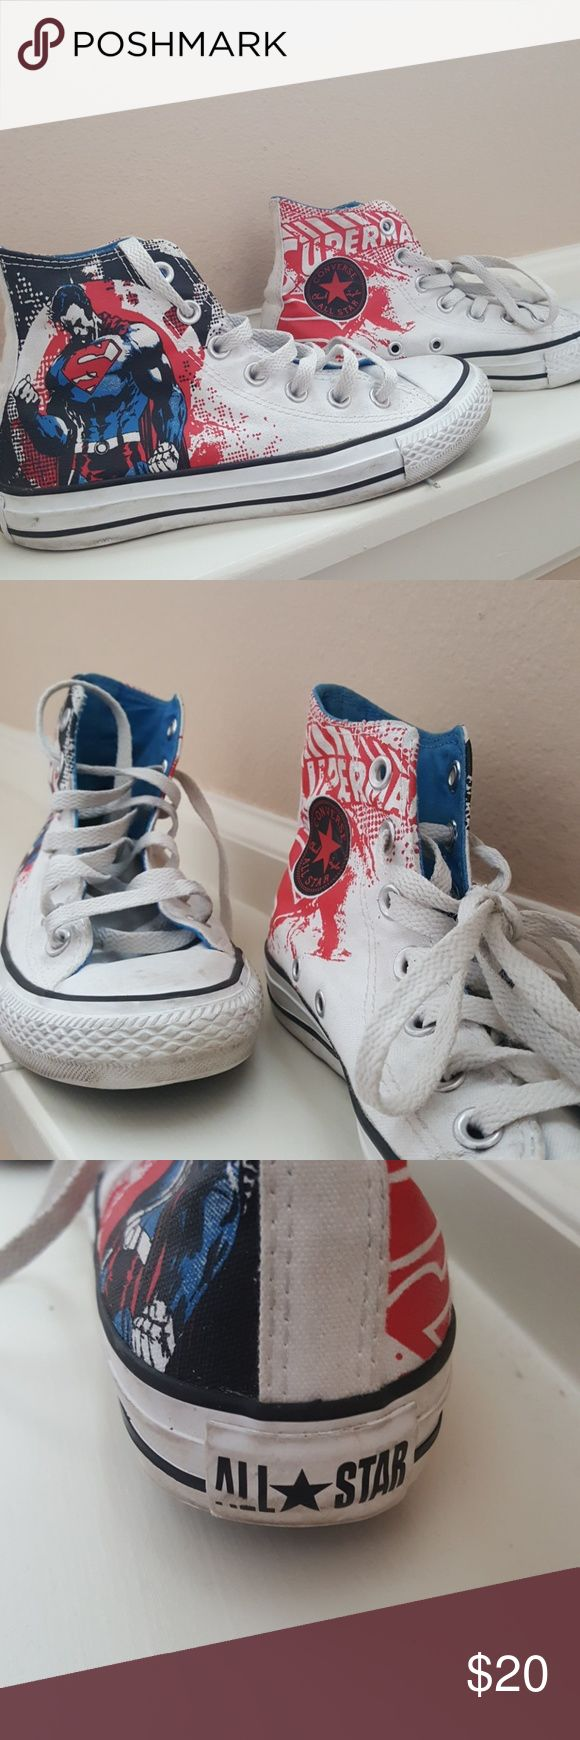 Rare Superman Comic Converse Superman Comic art drawn Converse in Women's size 6. These are hip and fun, wear them for a day out on the town with your fave pair of skinny jeans!  You'll love these, pre-loved but still tons of life left in these awesome shoes.  -LaPoshScott Converse Shoes Sneakers